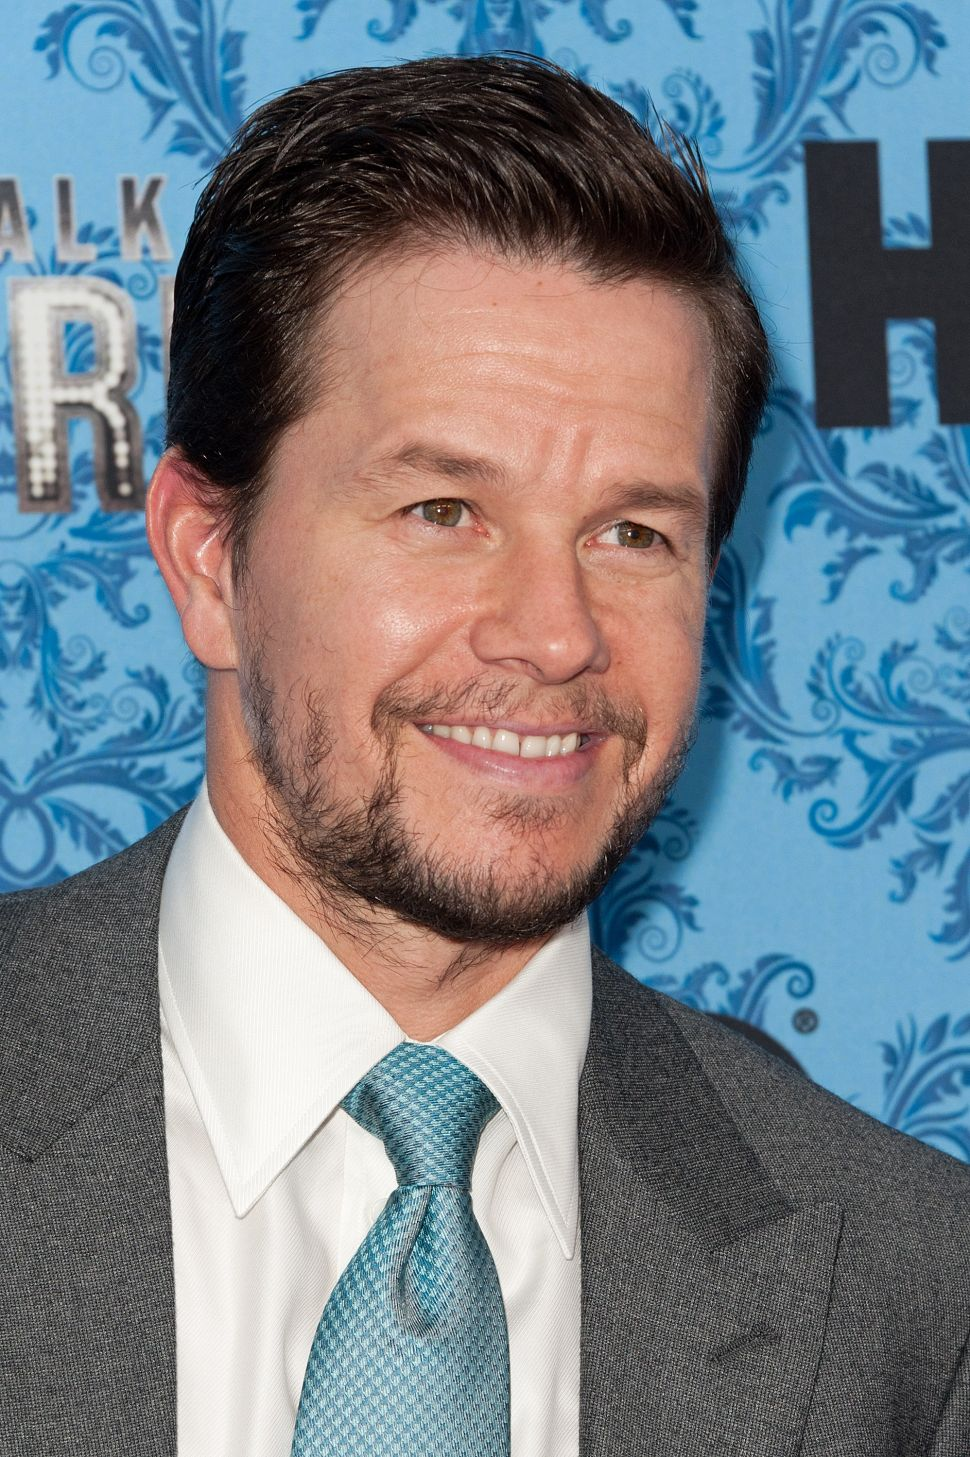 Mark Wahlberg Apologizes for Indulging 9/11 Fantasy in Men's Journal